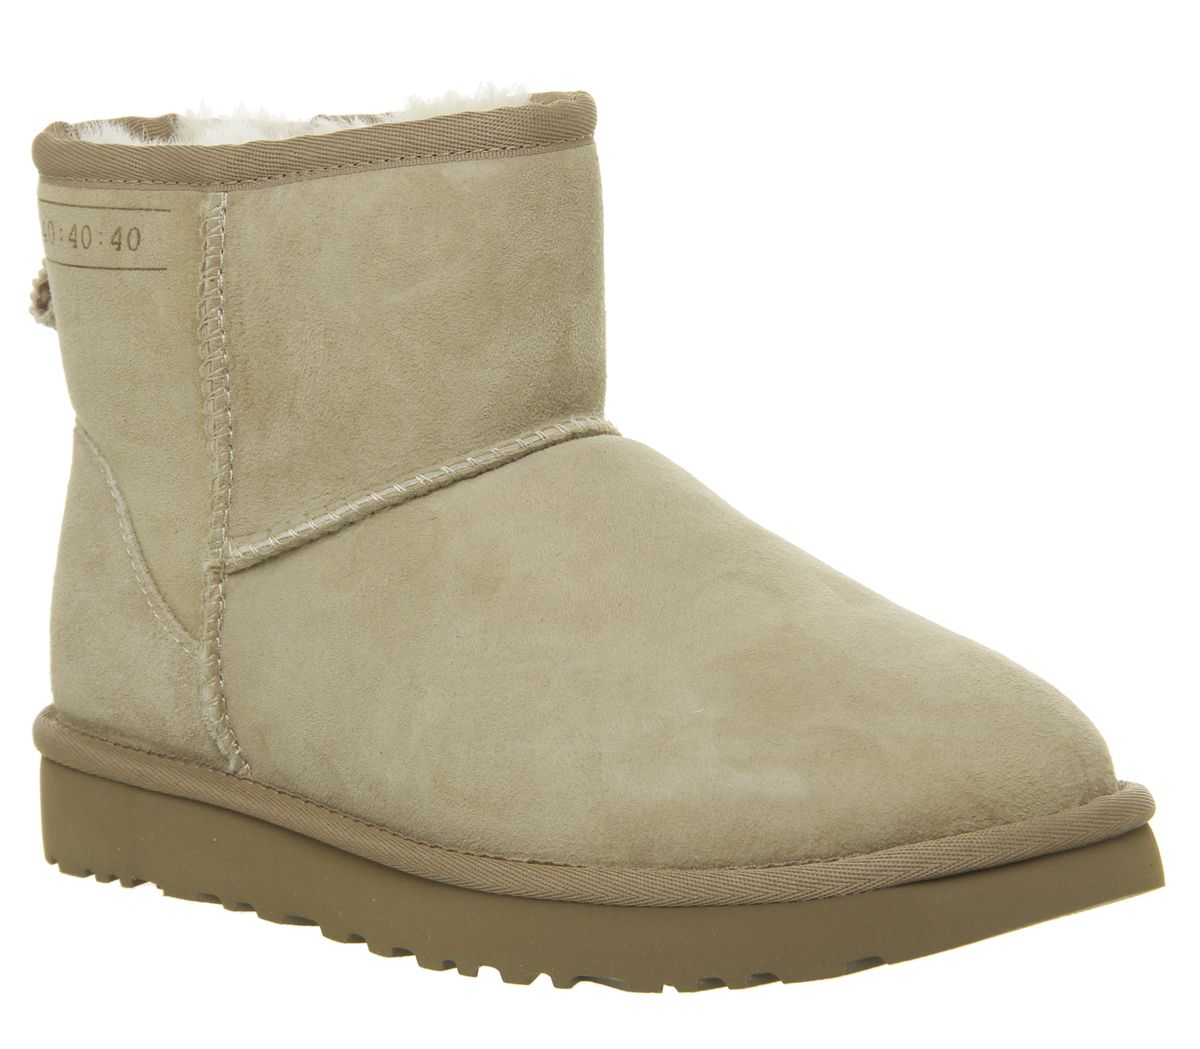 0e7ff1433bd UGG Classic Mini 40 40 40 Boots Sand - Ankle Boots